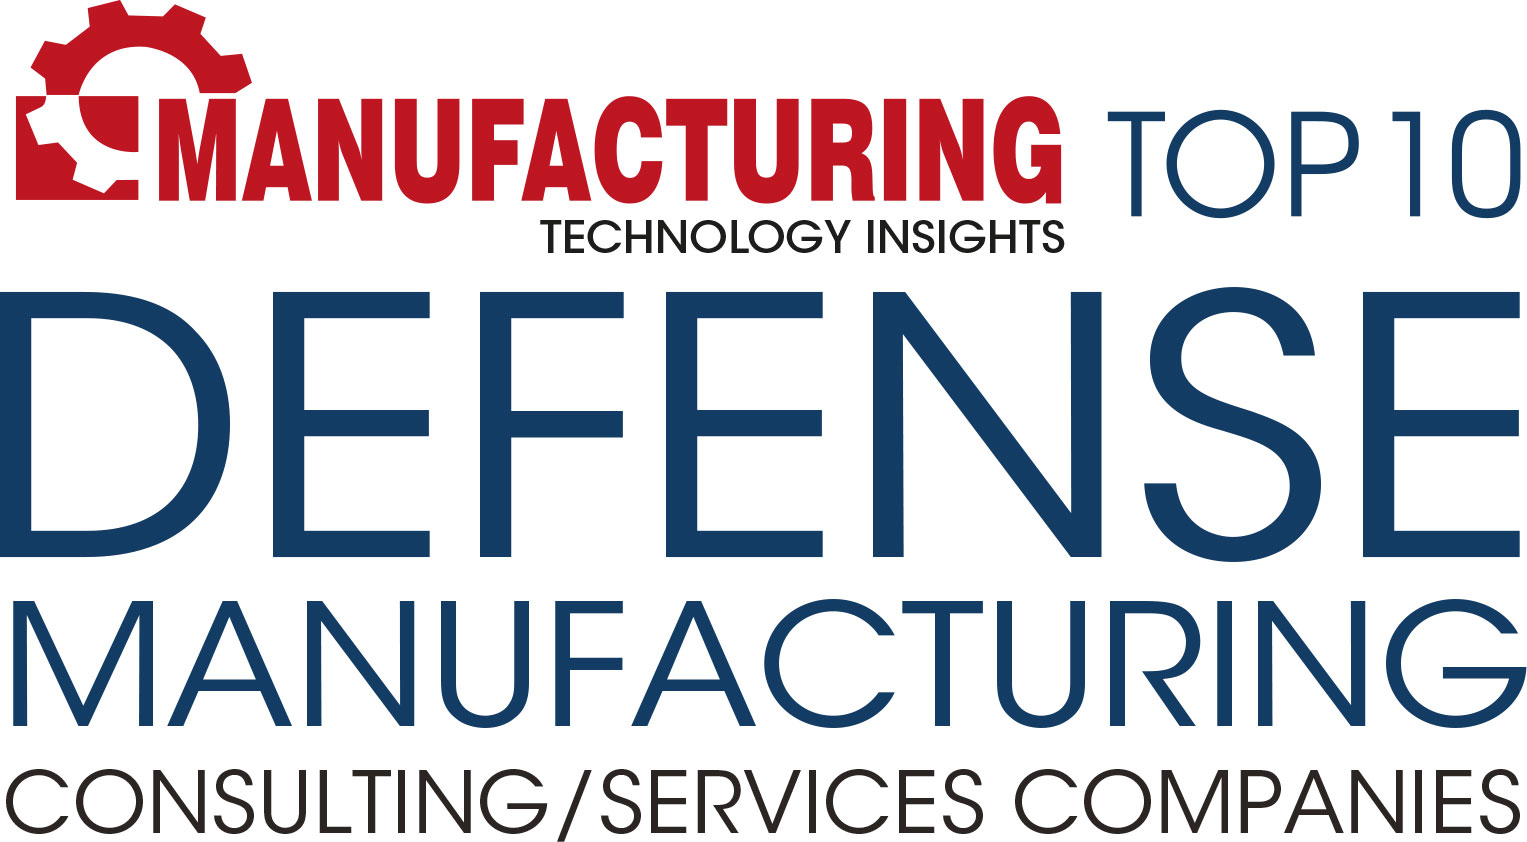 Top 10 Defense Manufacturing Consulting/Services Companies - 2019